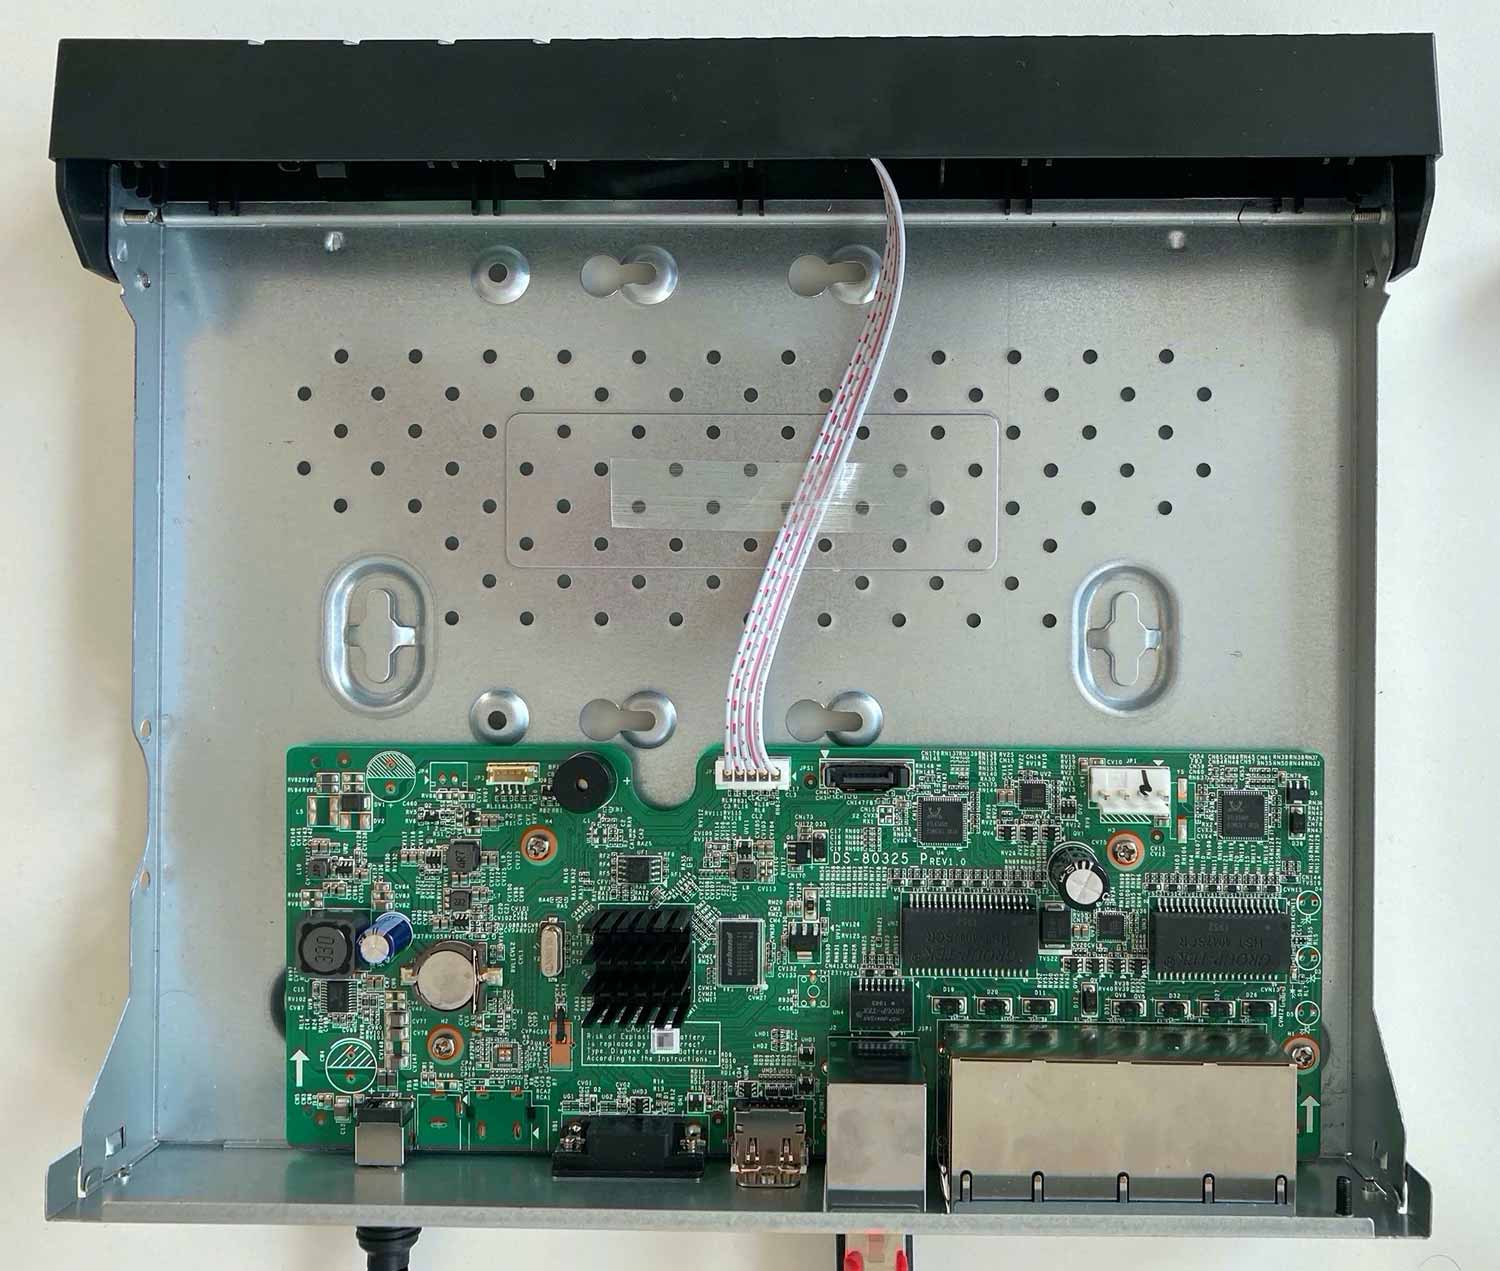 An RCE in Annke video surveillance product allows hacking the device